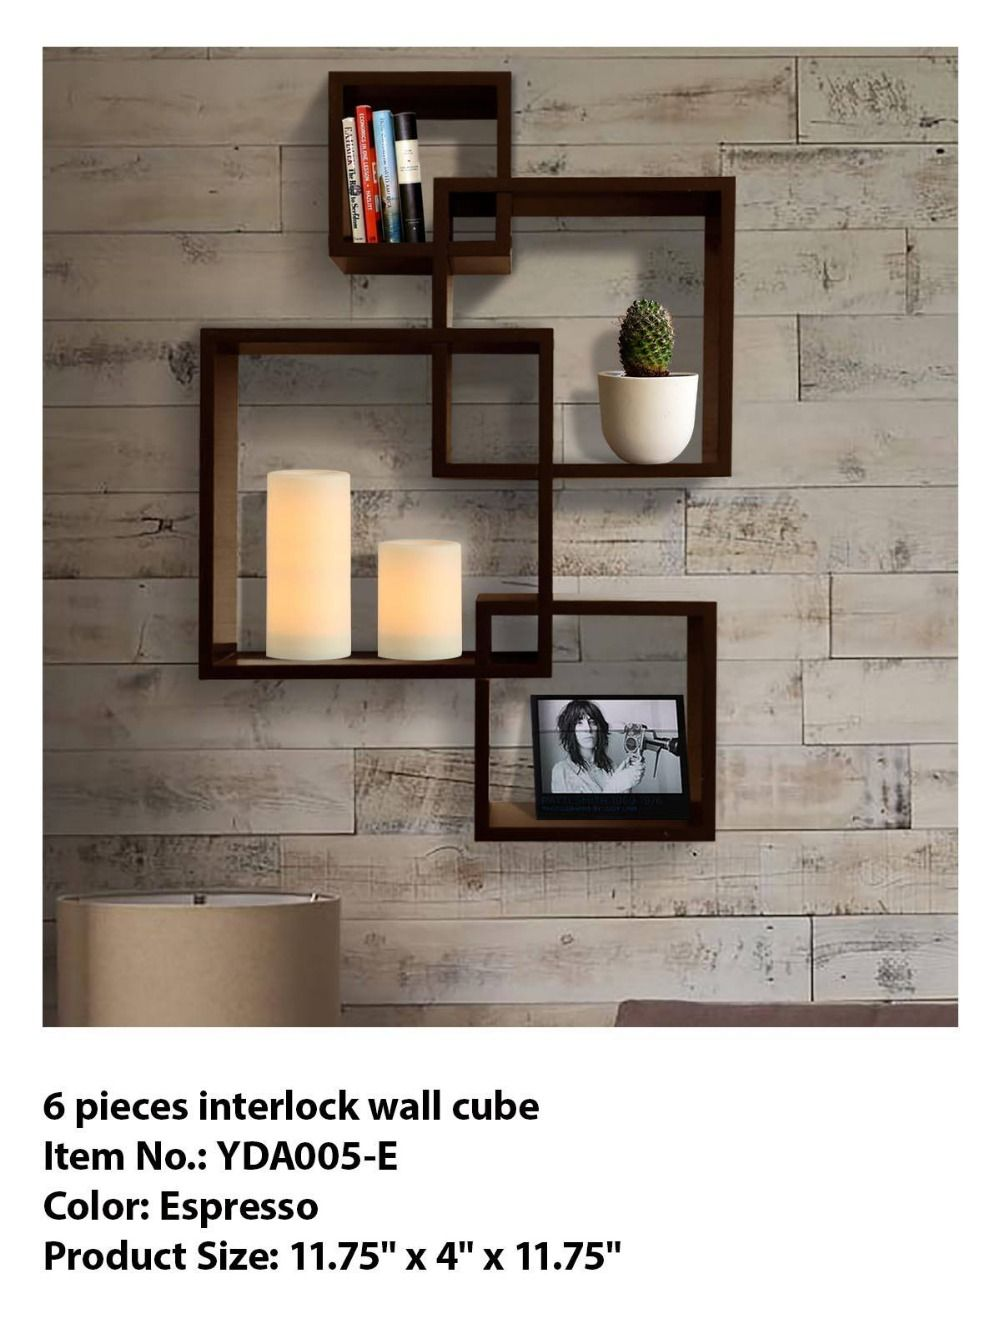 6 Pieces Interlock Wall Cube Decorative Wooden Wall Cubes Cube